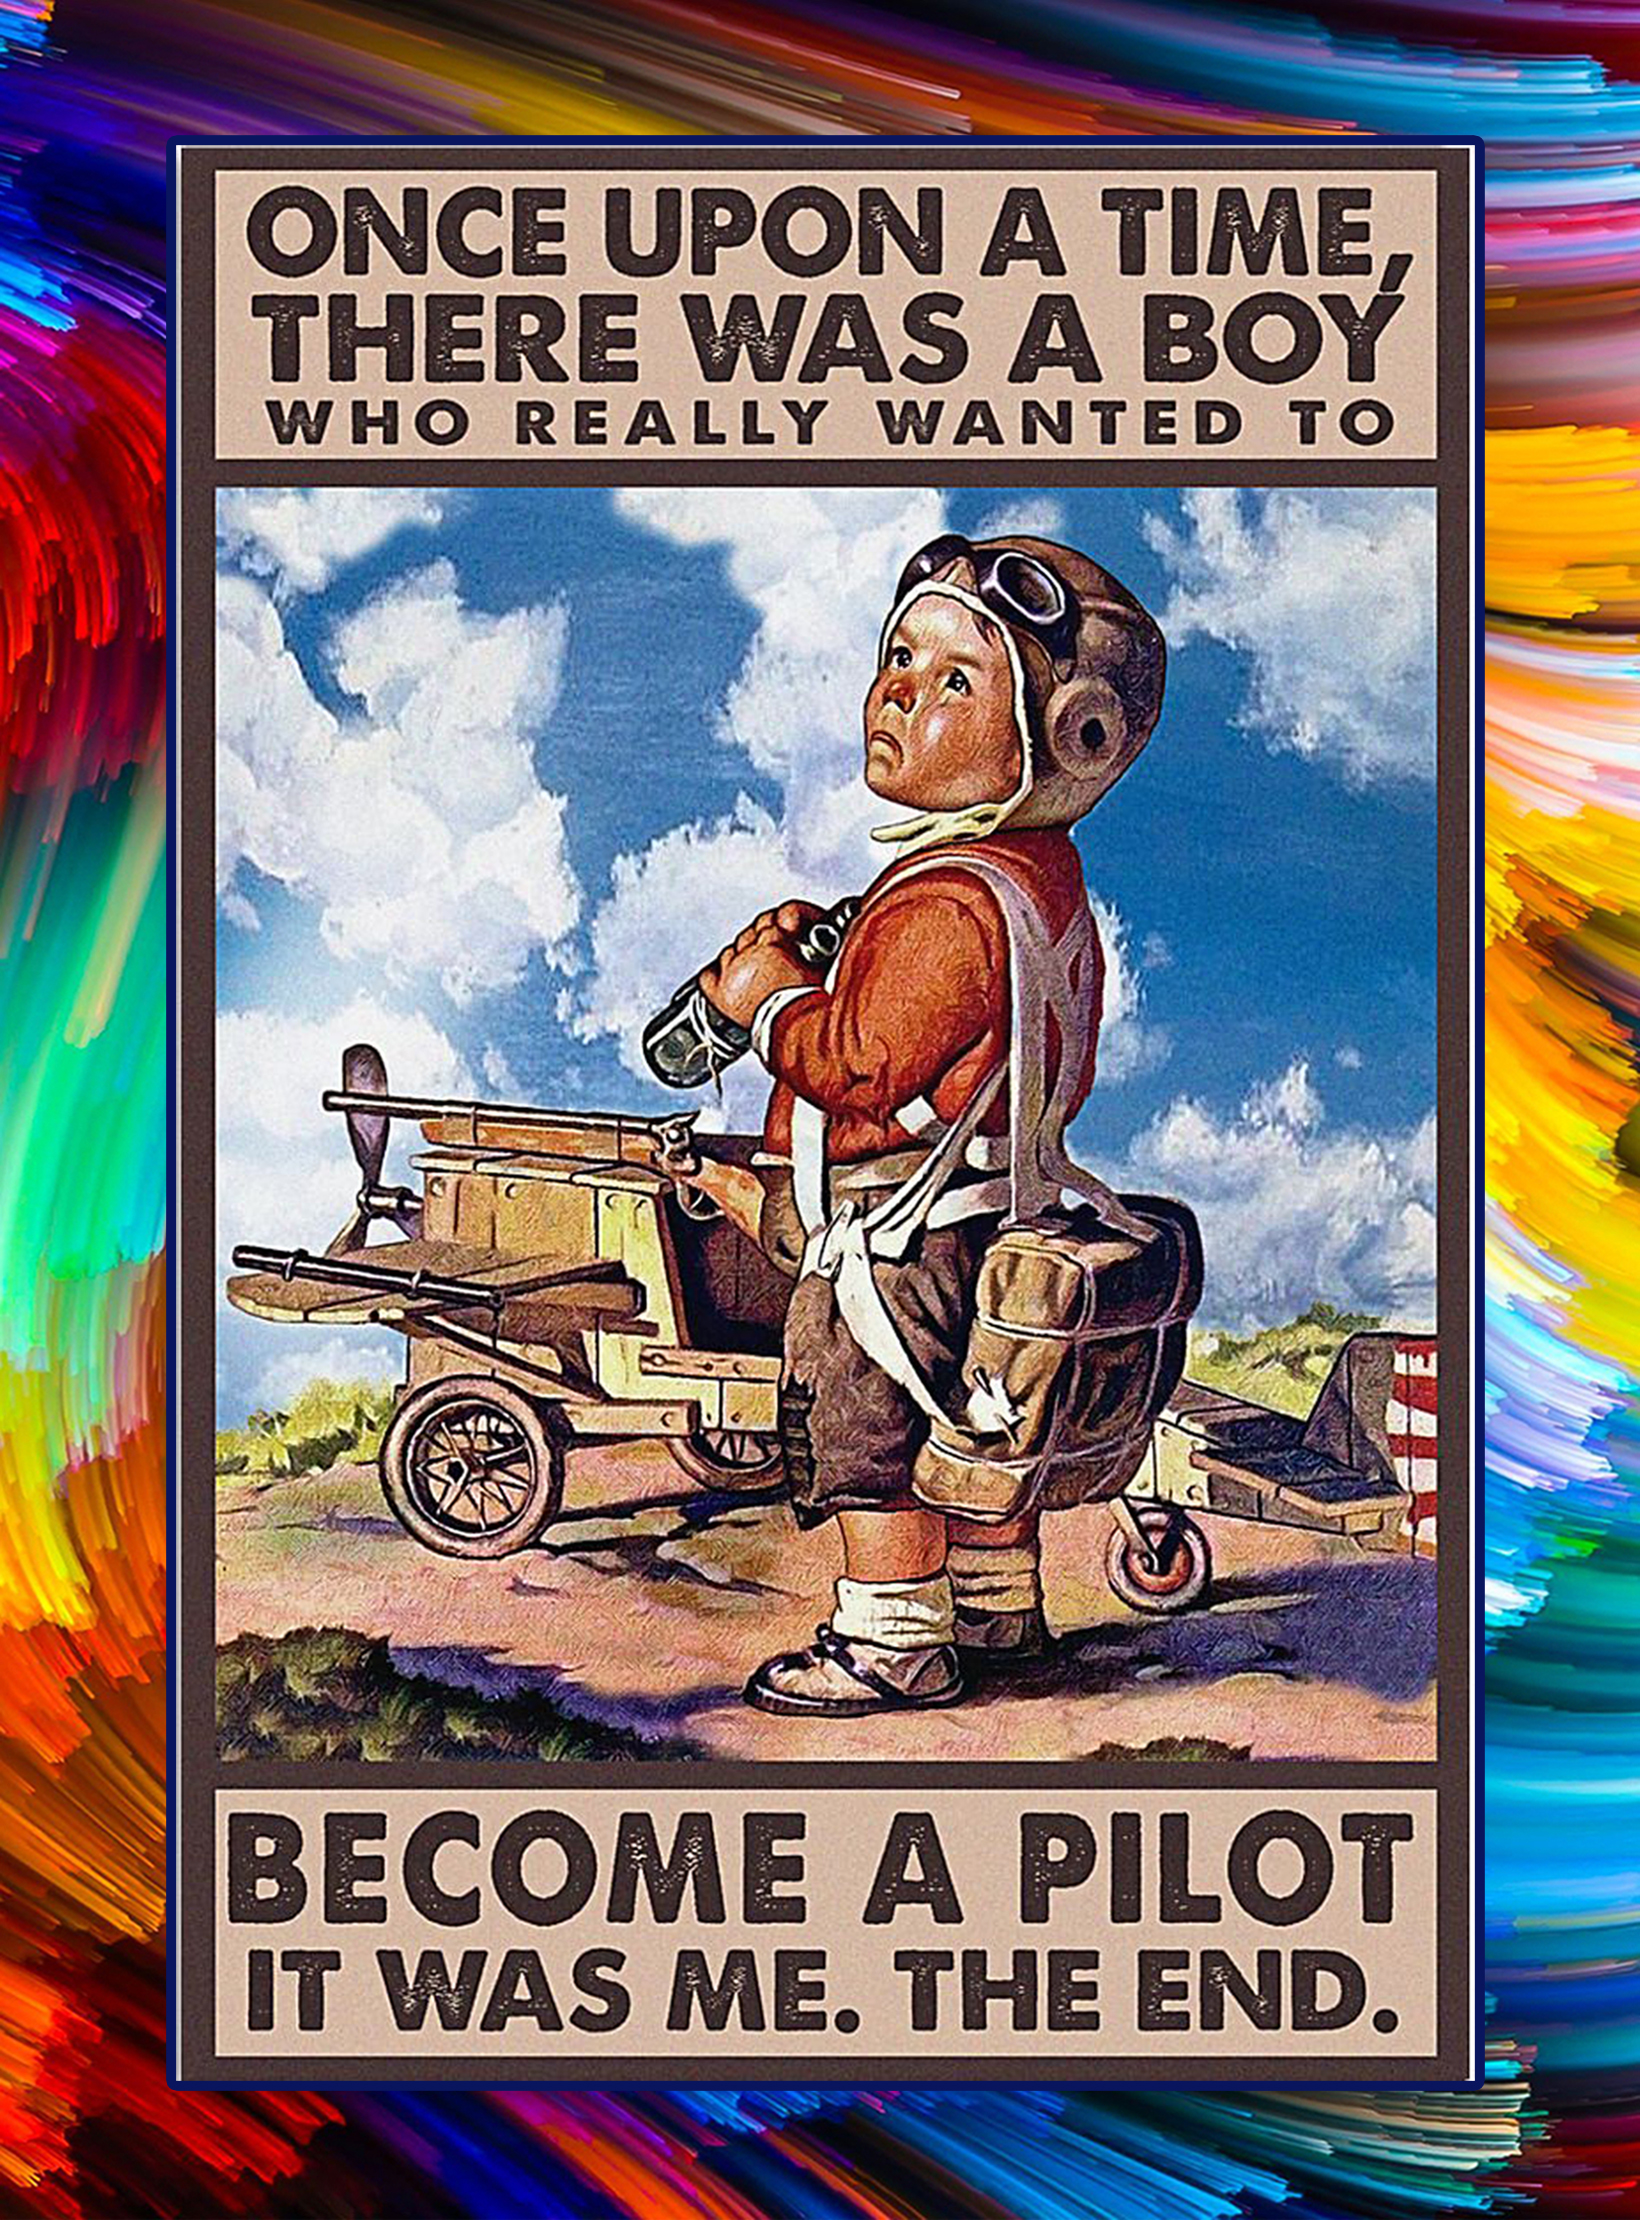 There was a boy who really wanted to become a pilot poster - A1